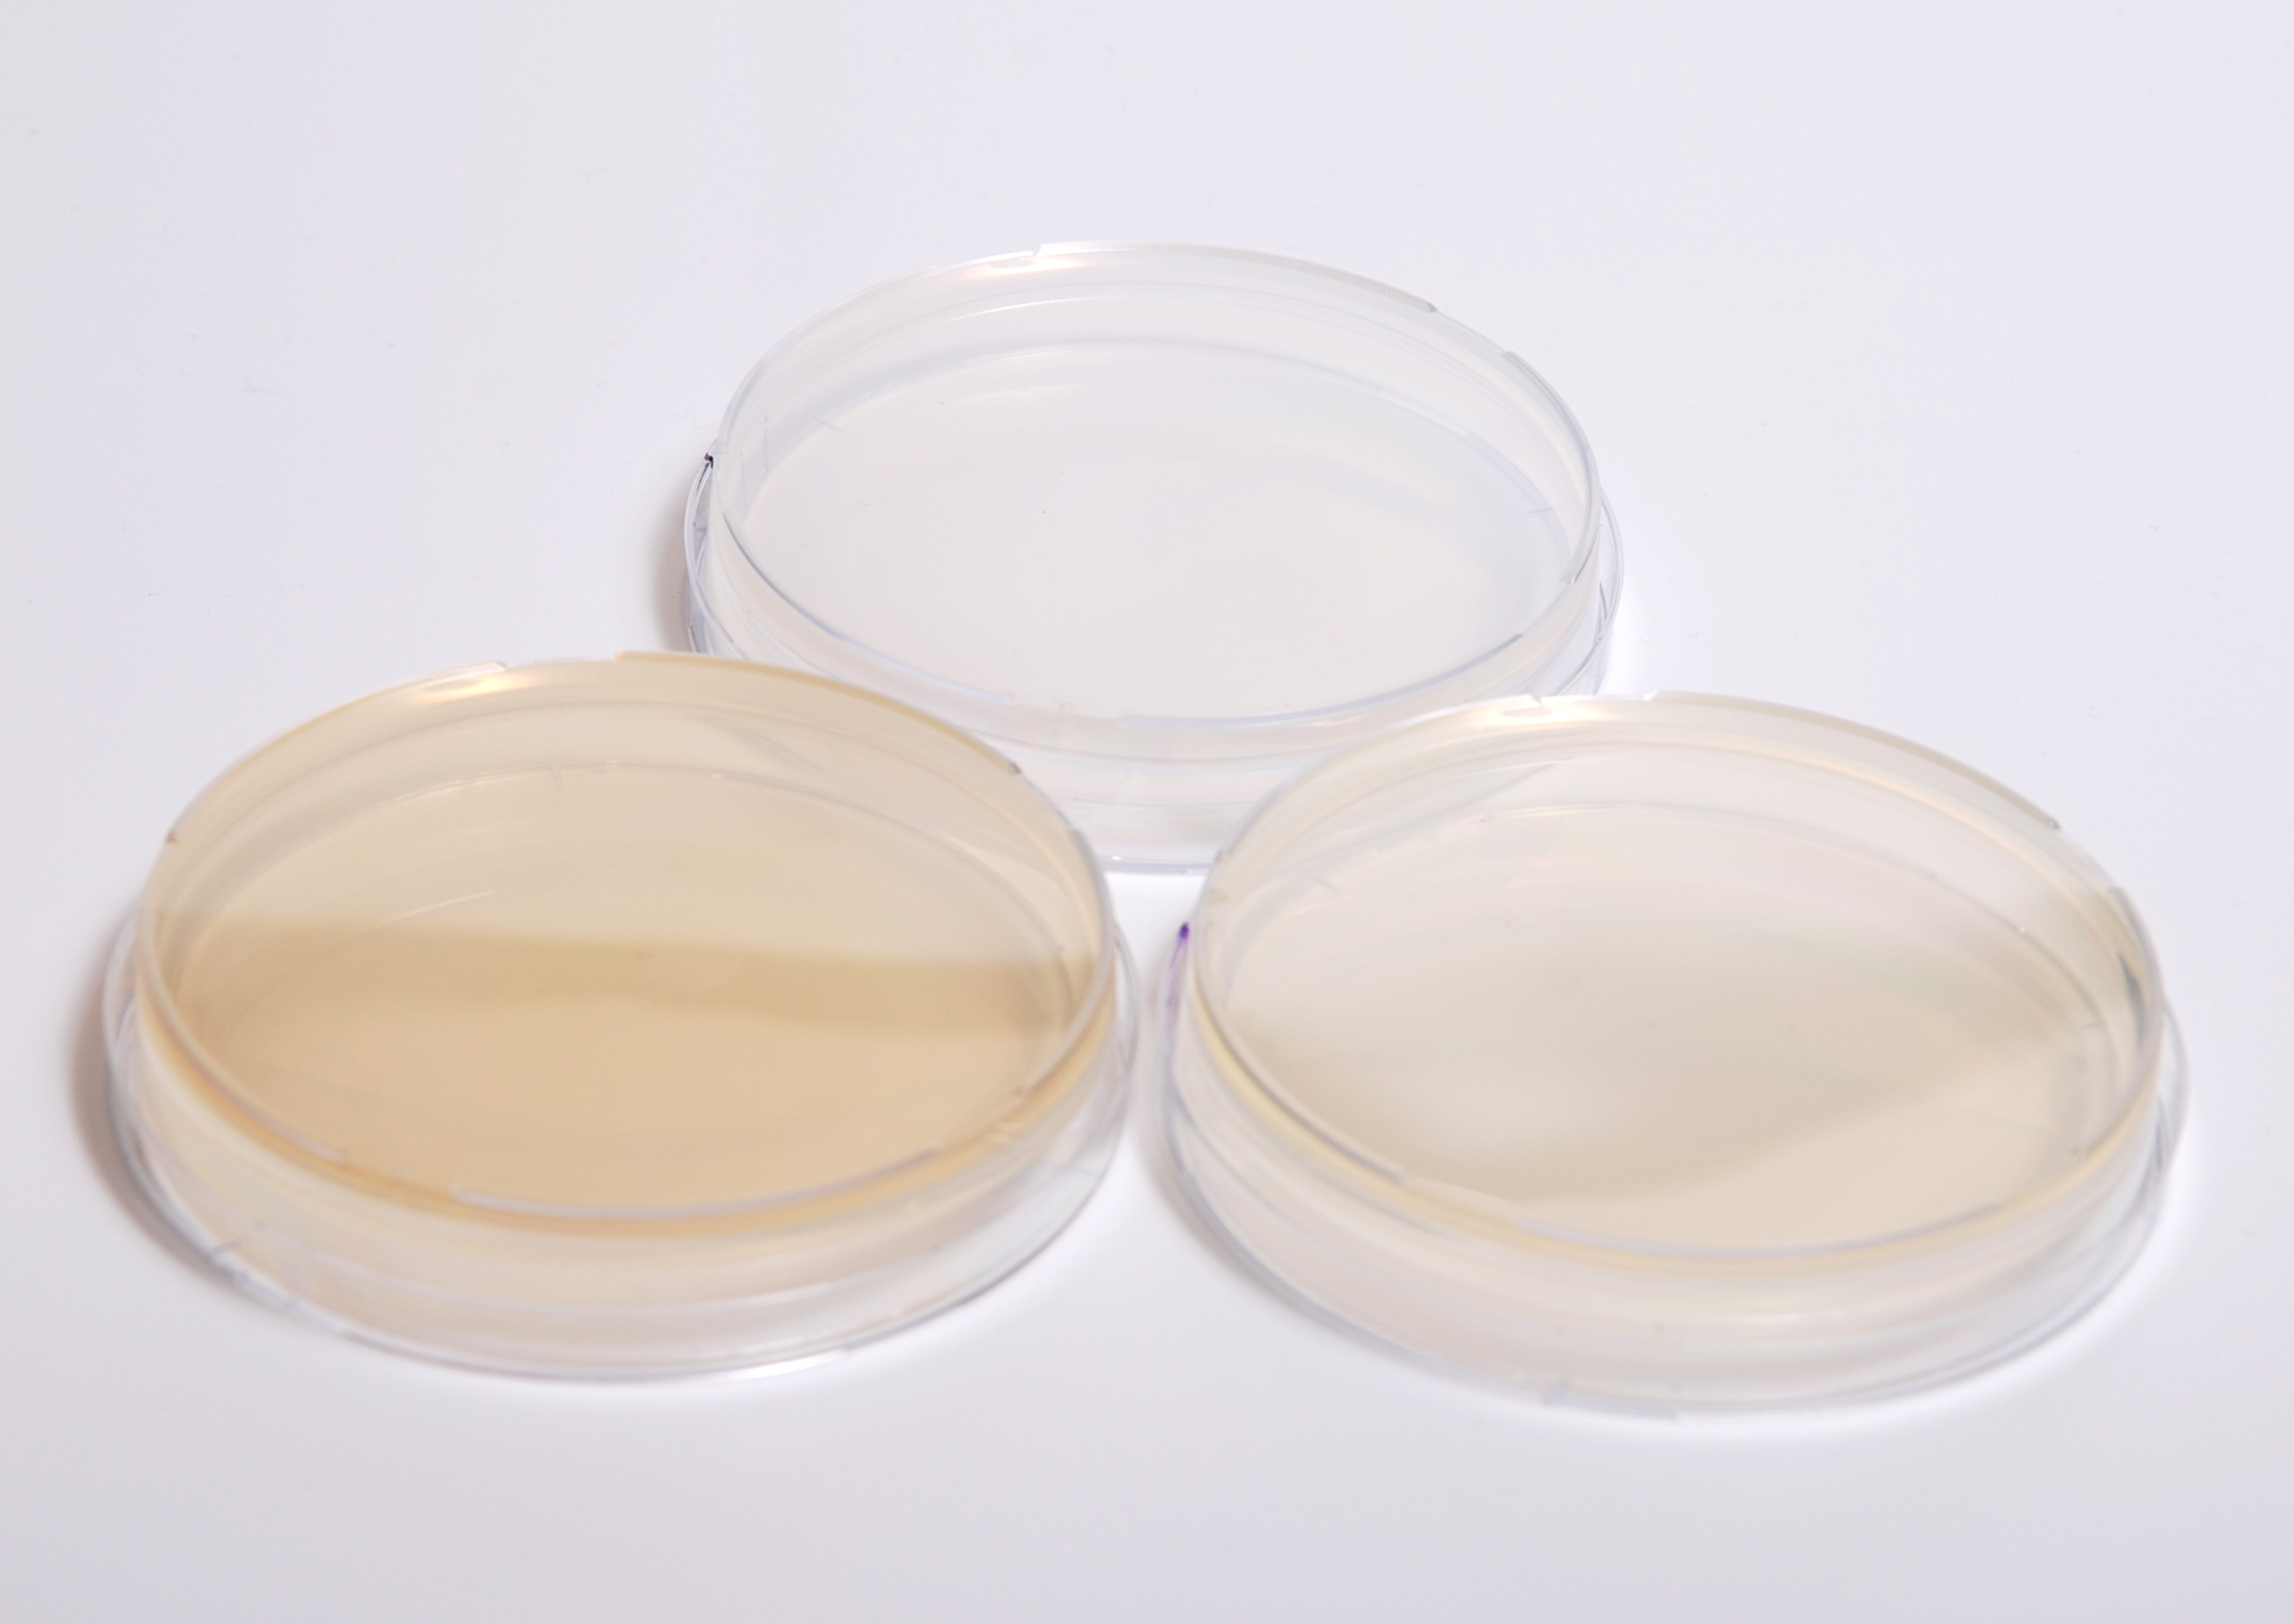 File:Agar plates different types.jpg - Wikimedia Commons